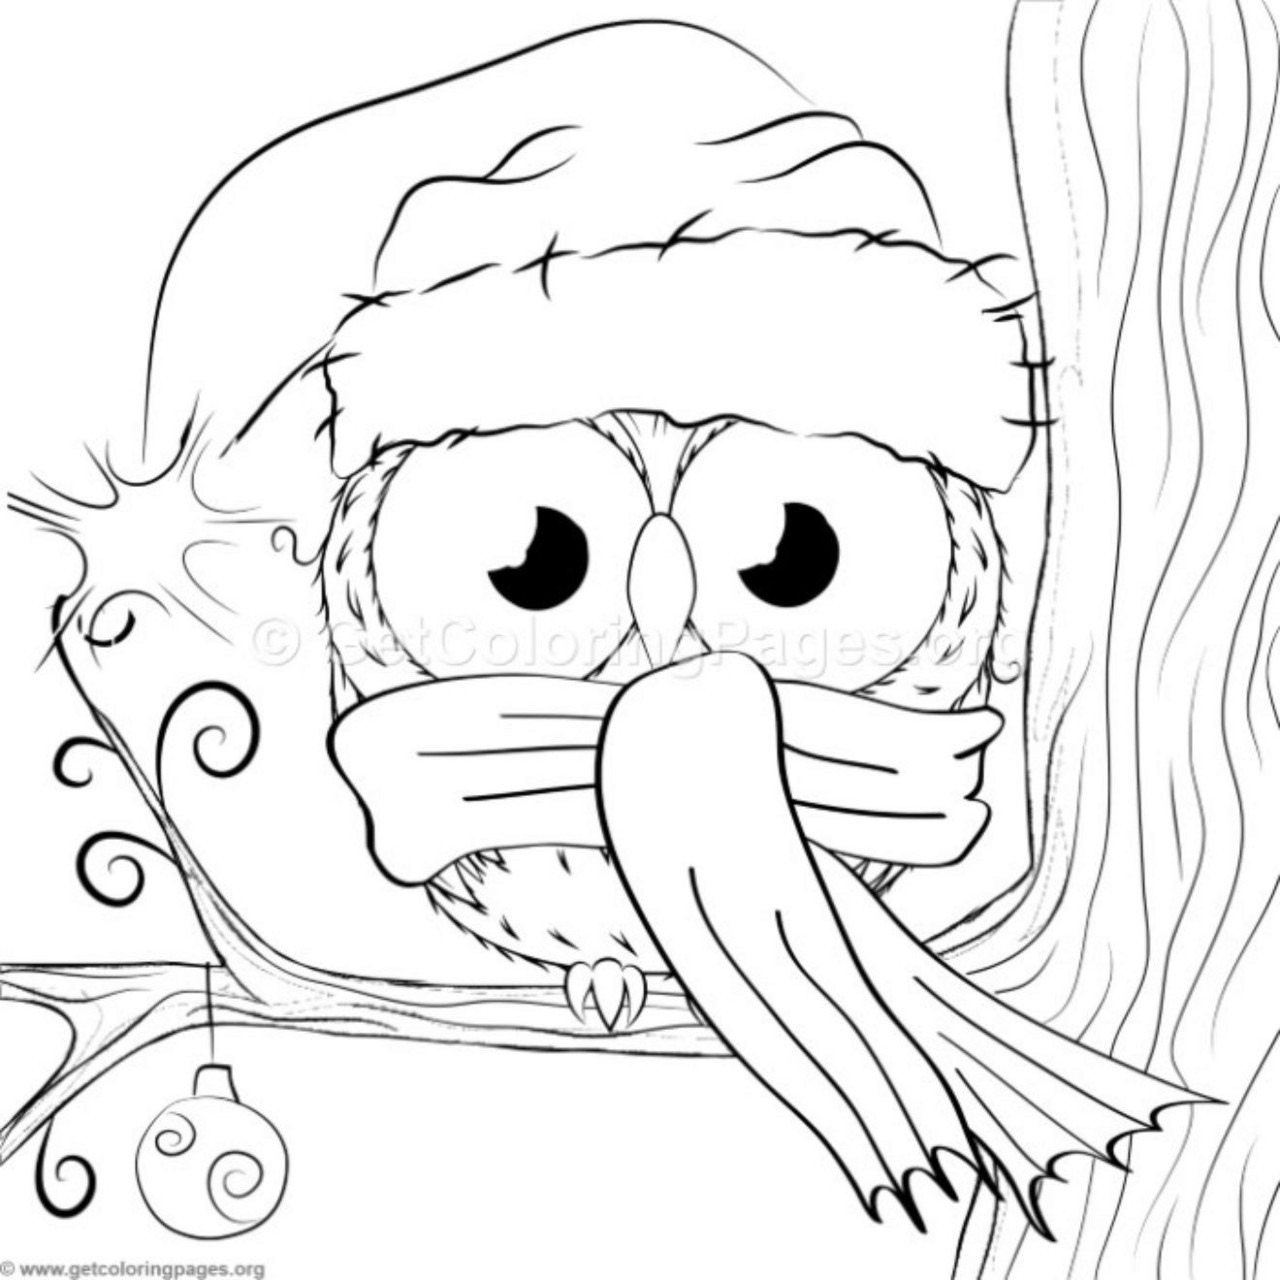 Cute Christmas Owl 17 Coloring Pages – GetColoringPages.org ...